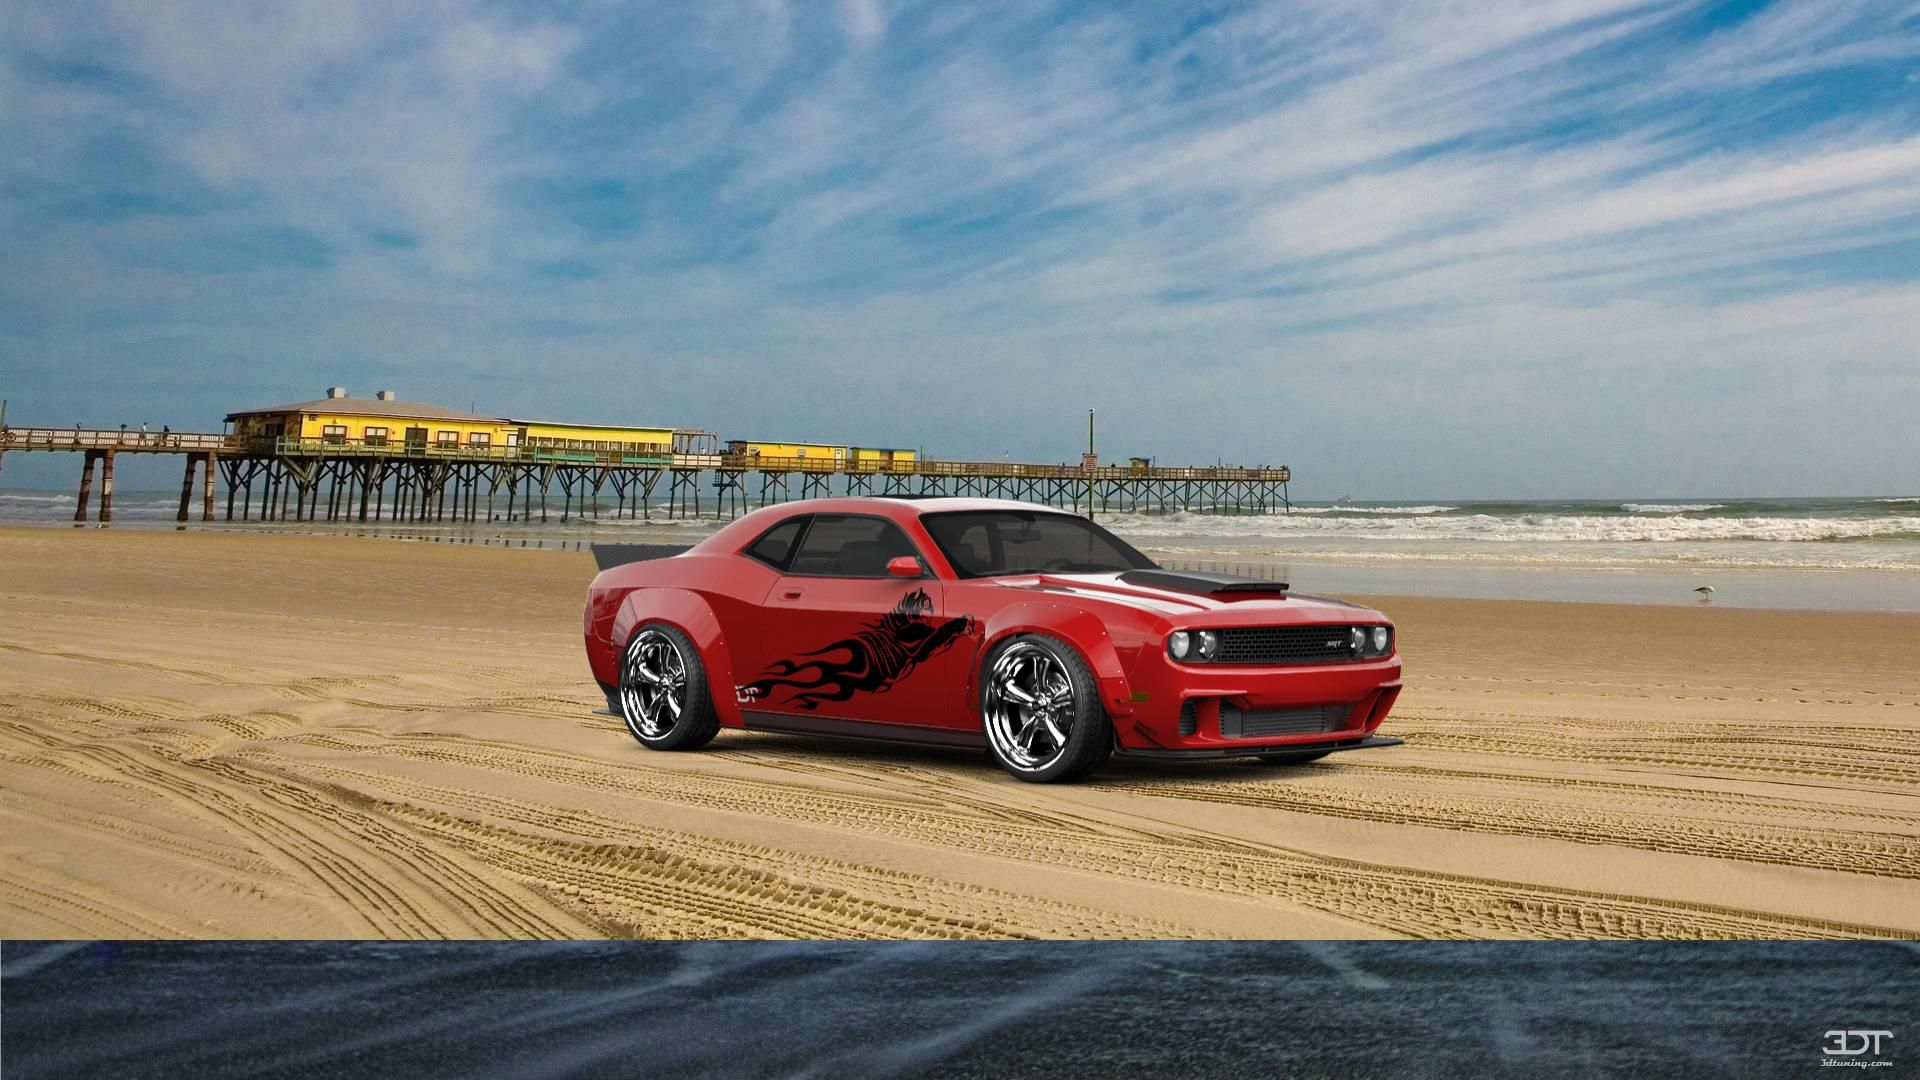 Checkout my tuning Dodge Challenger 2109 at 3DTuning 3dtuning